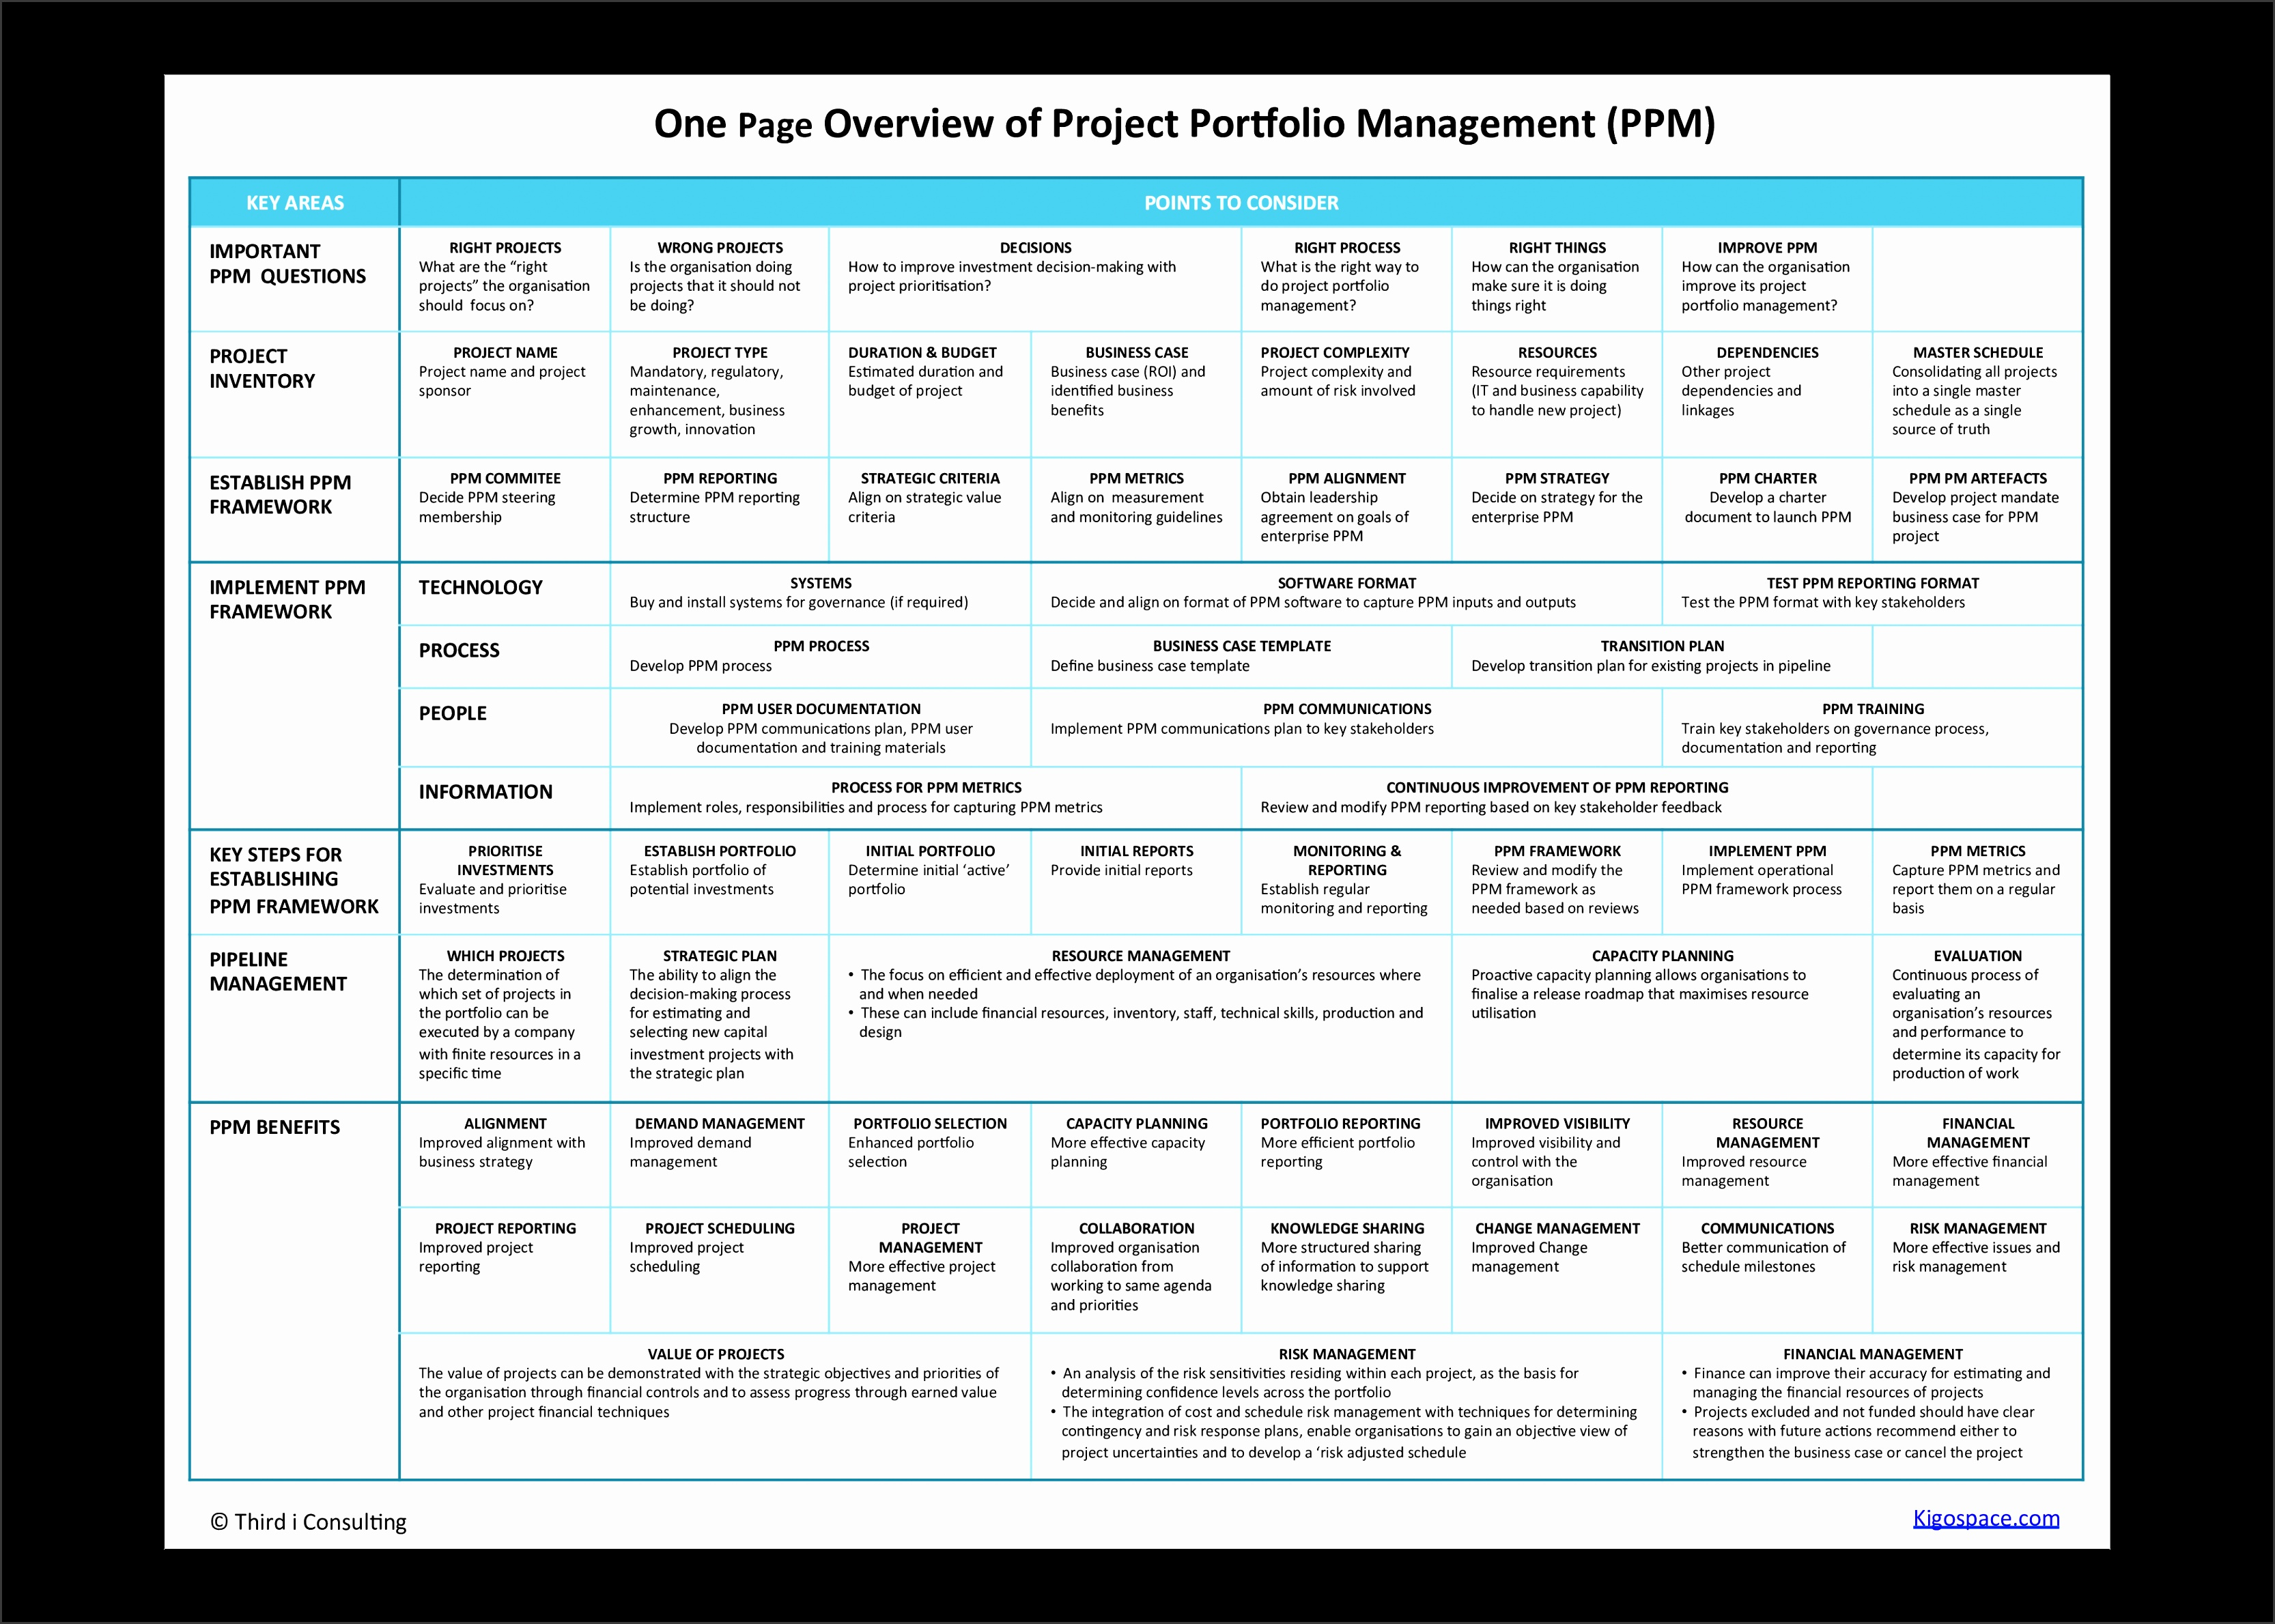 Project Portfolio Management e Page Overview main image Download template